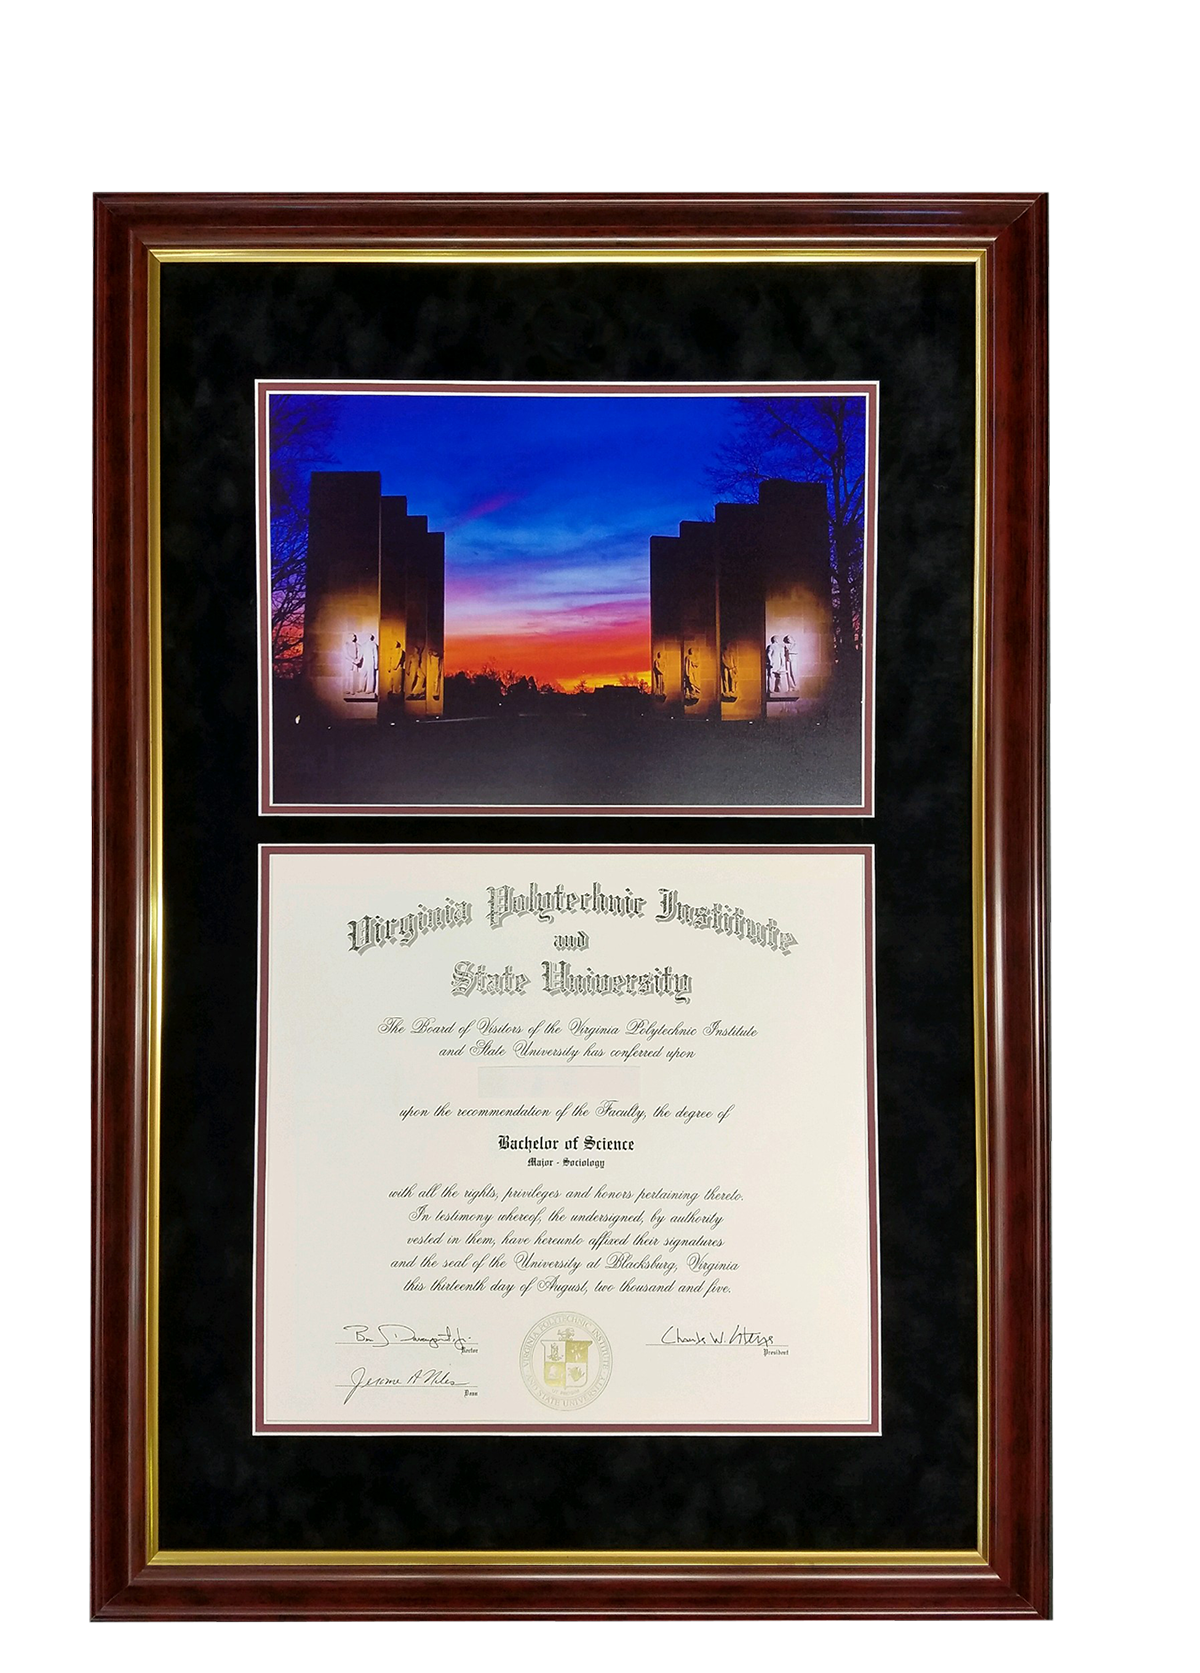 diploma frames this site designed by